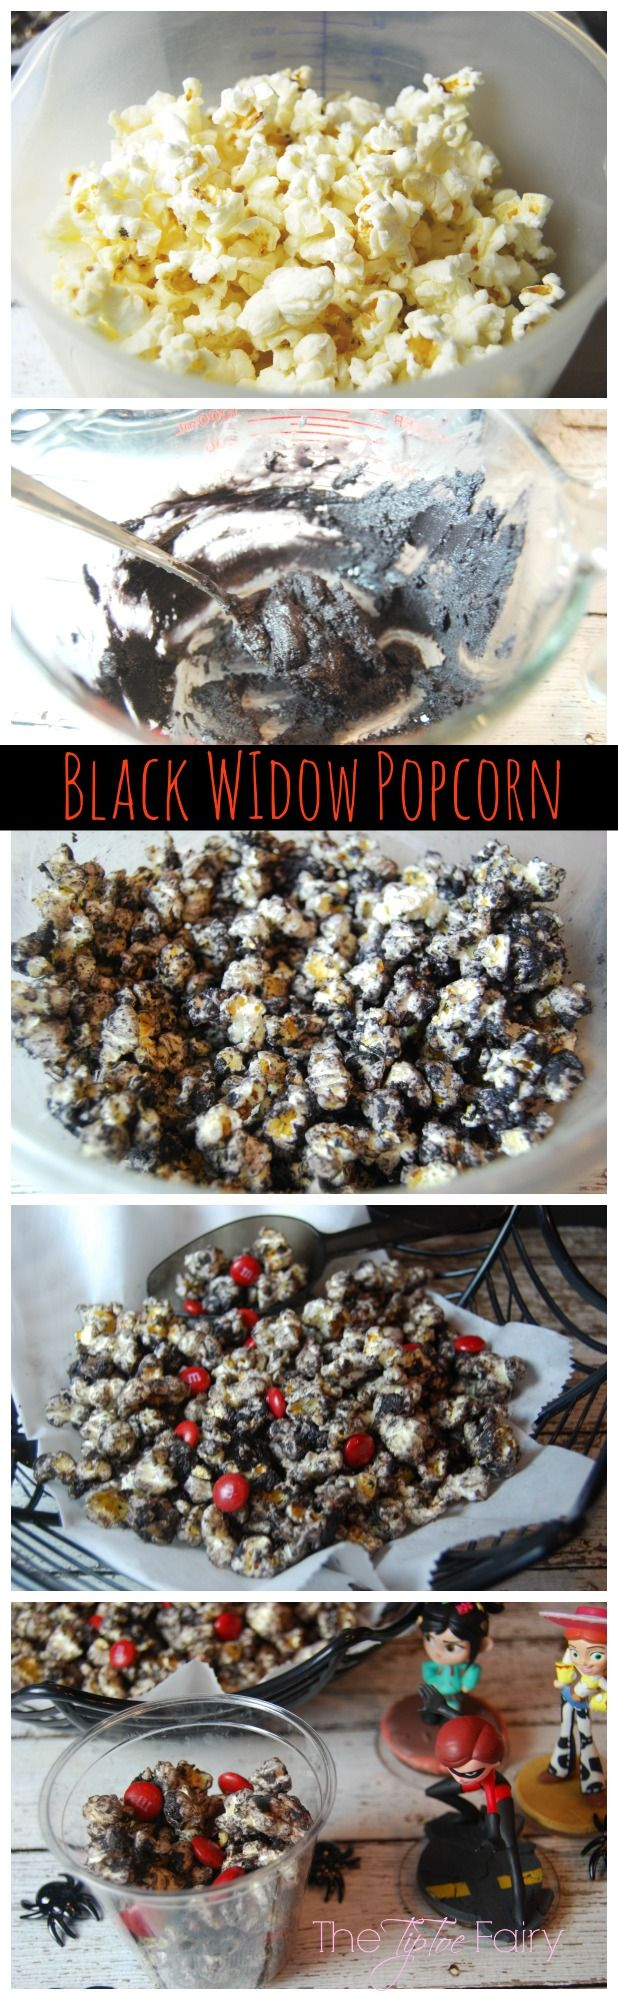 Black Widow Popcorn   I sorta just want to make this regardless of AOS day tbh it just sounds good